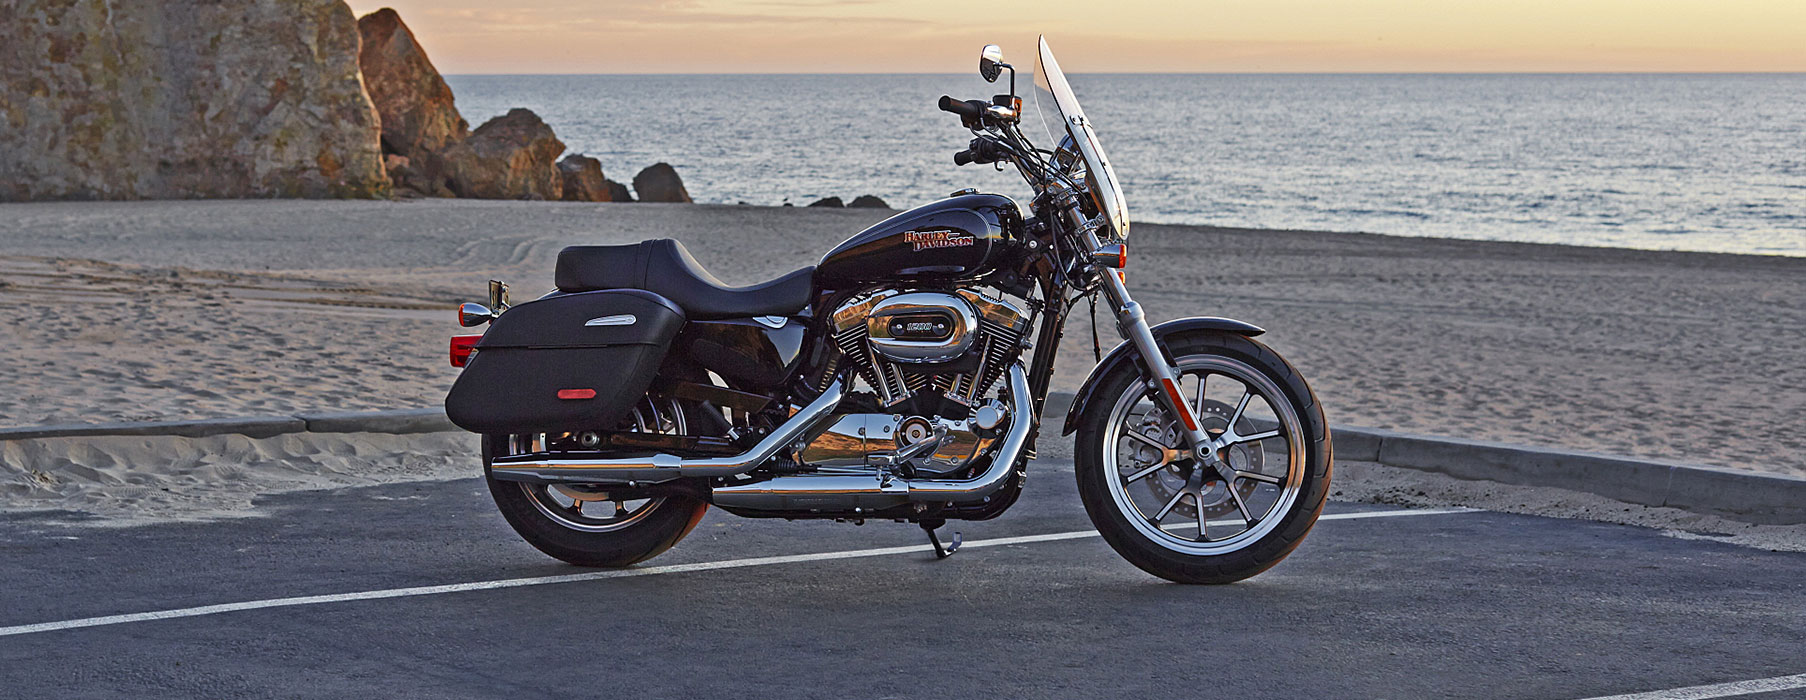 SuperLow® 1200T | 2014 Motorcycles | Suffolk County Harley-Davidson®